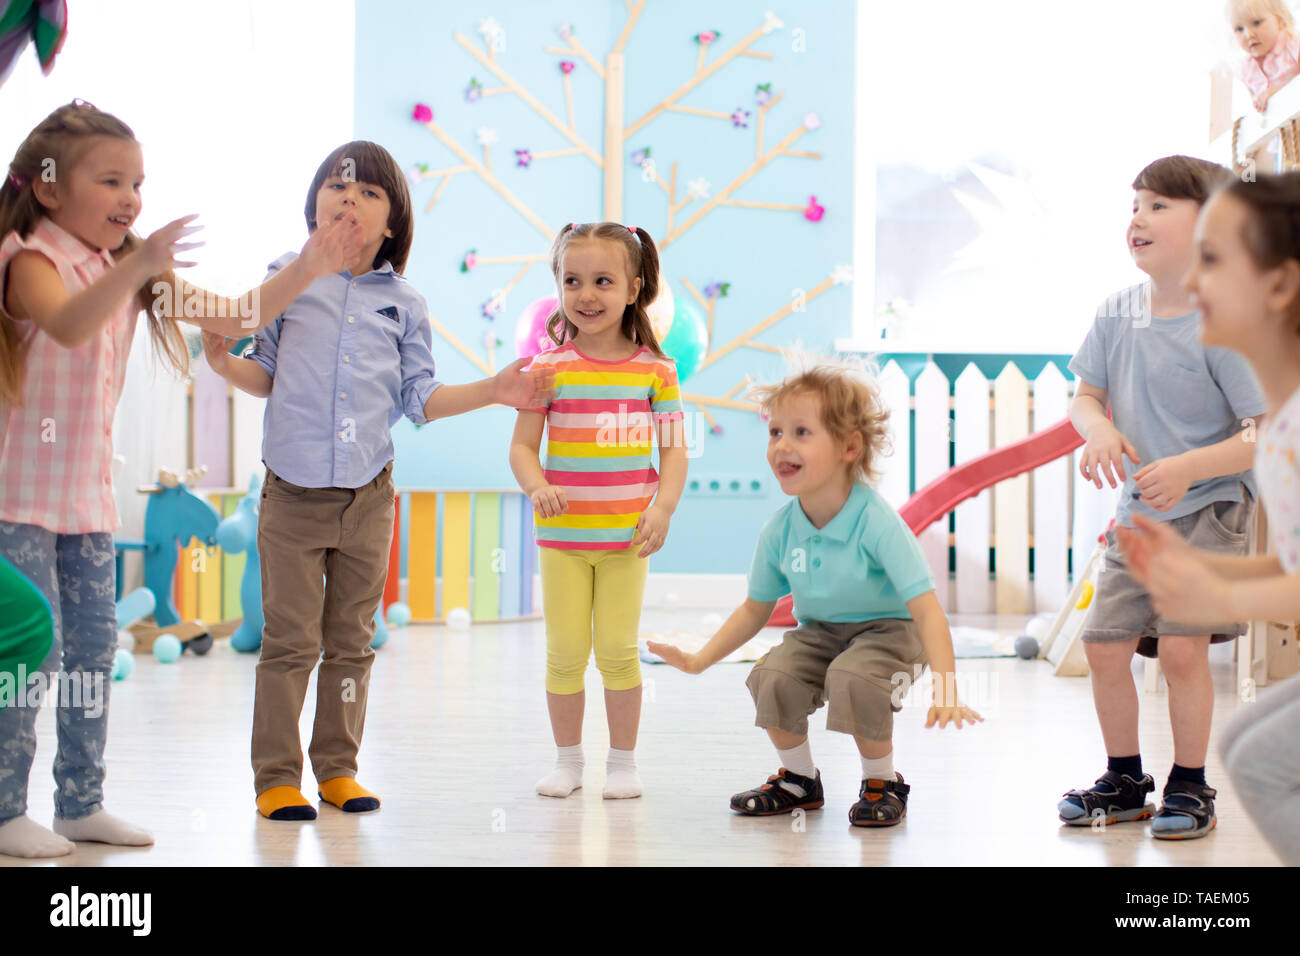 Group of happy children jumping indoor. Kids play together - Stock Image